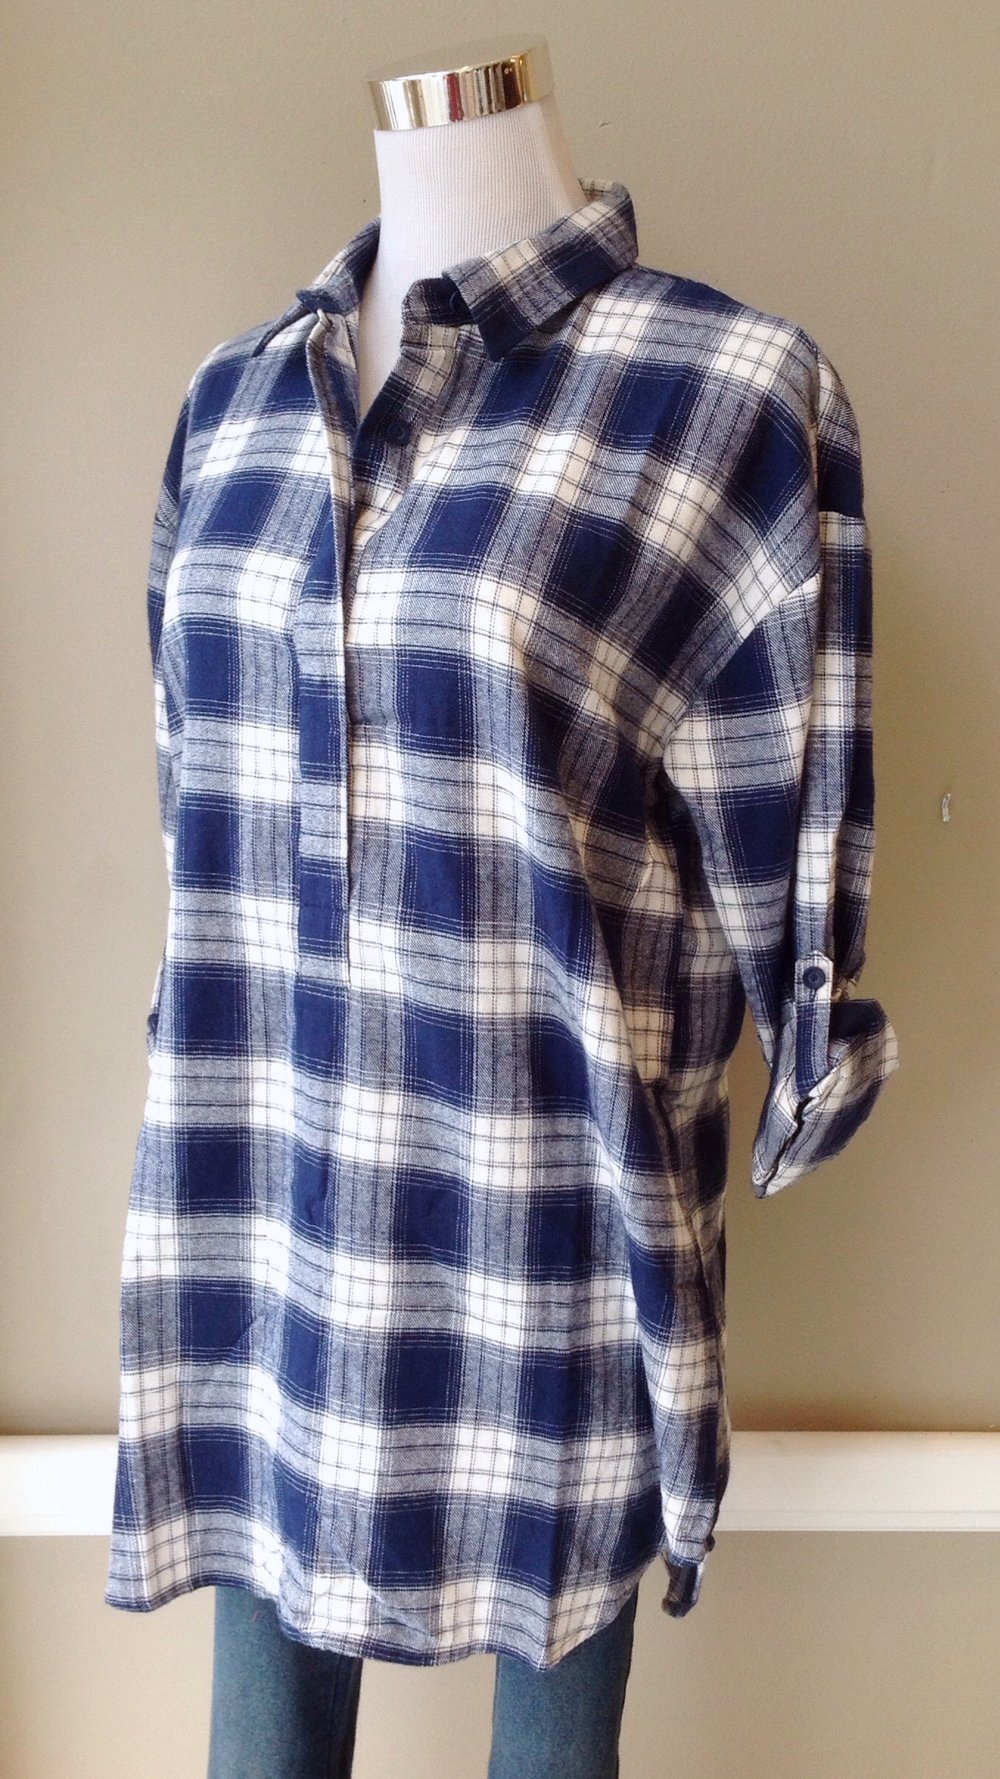 Rayon flannel popover top with roll tab sleeves in navy/ivory, $34